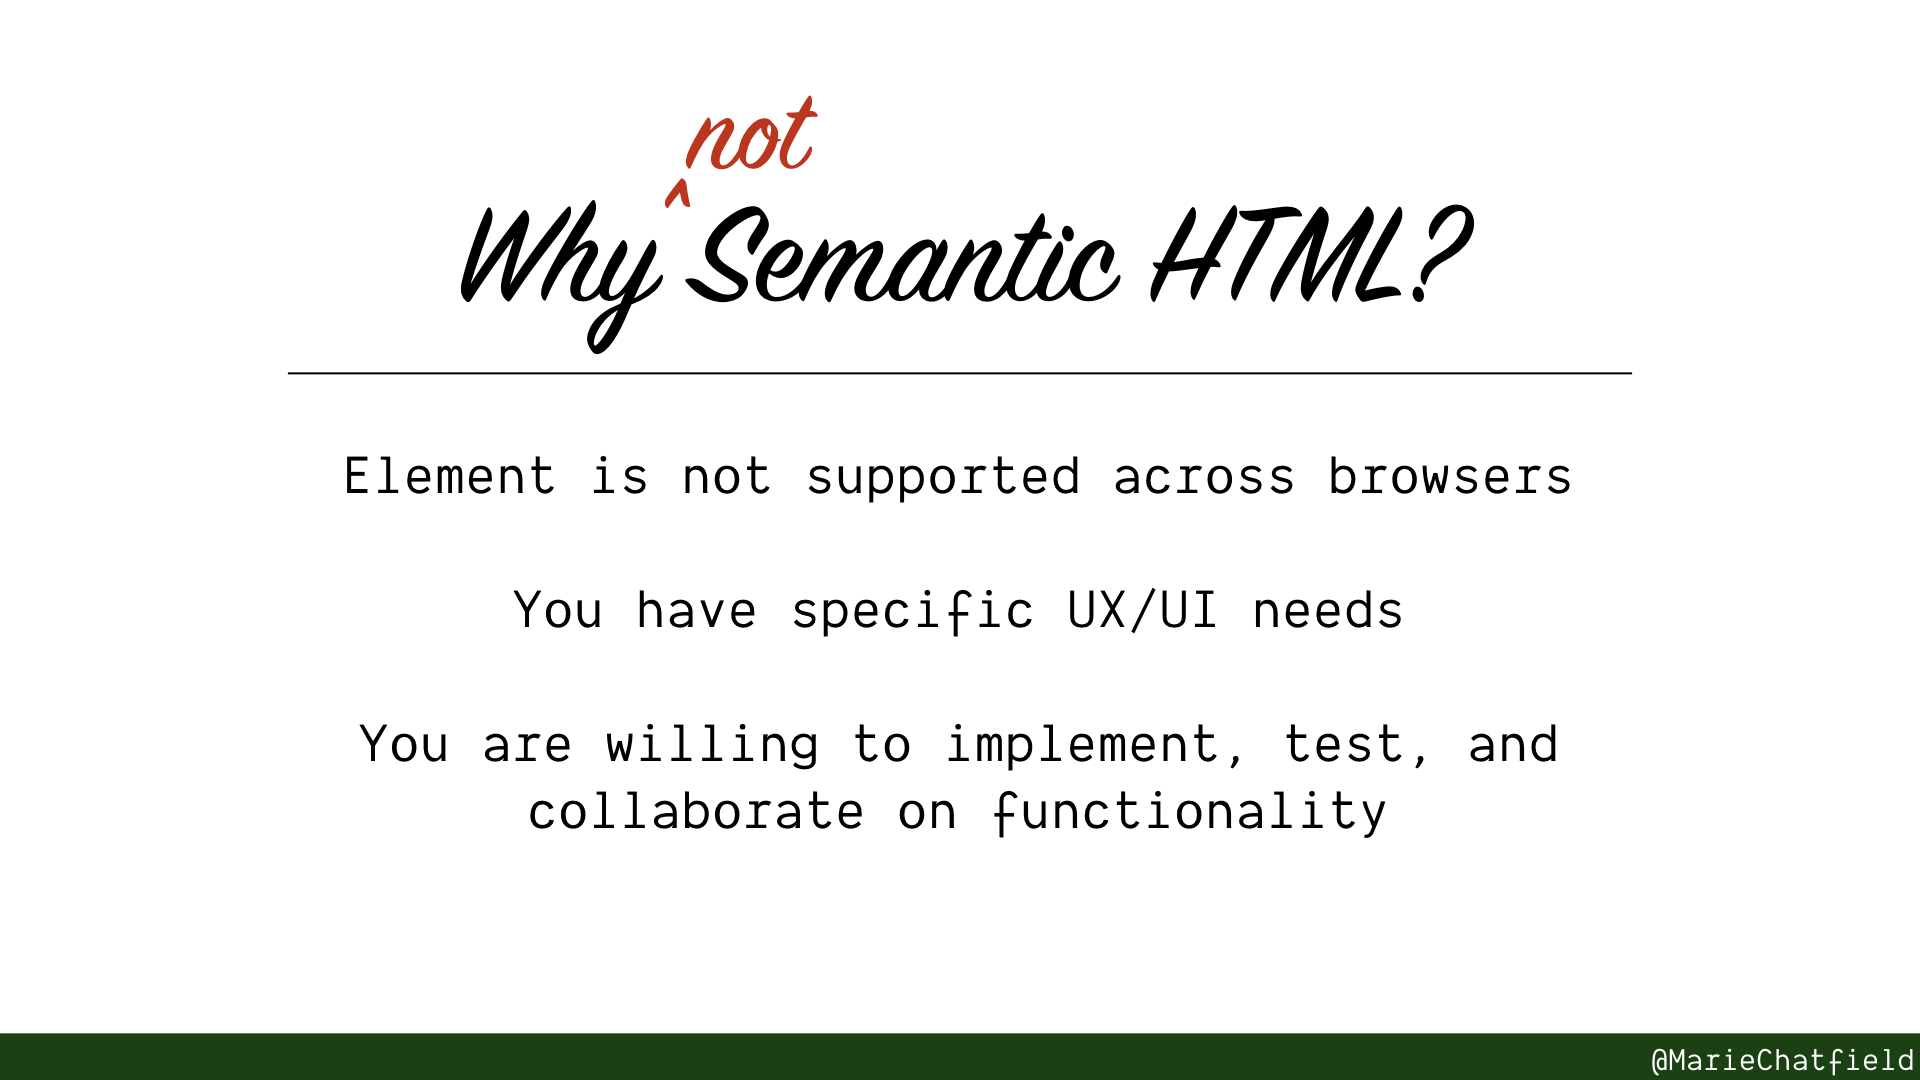 When not to use Semantic HTMl slide